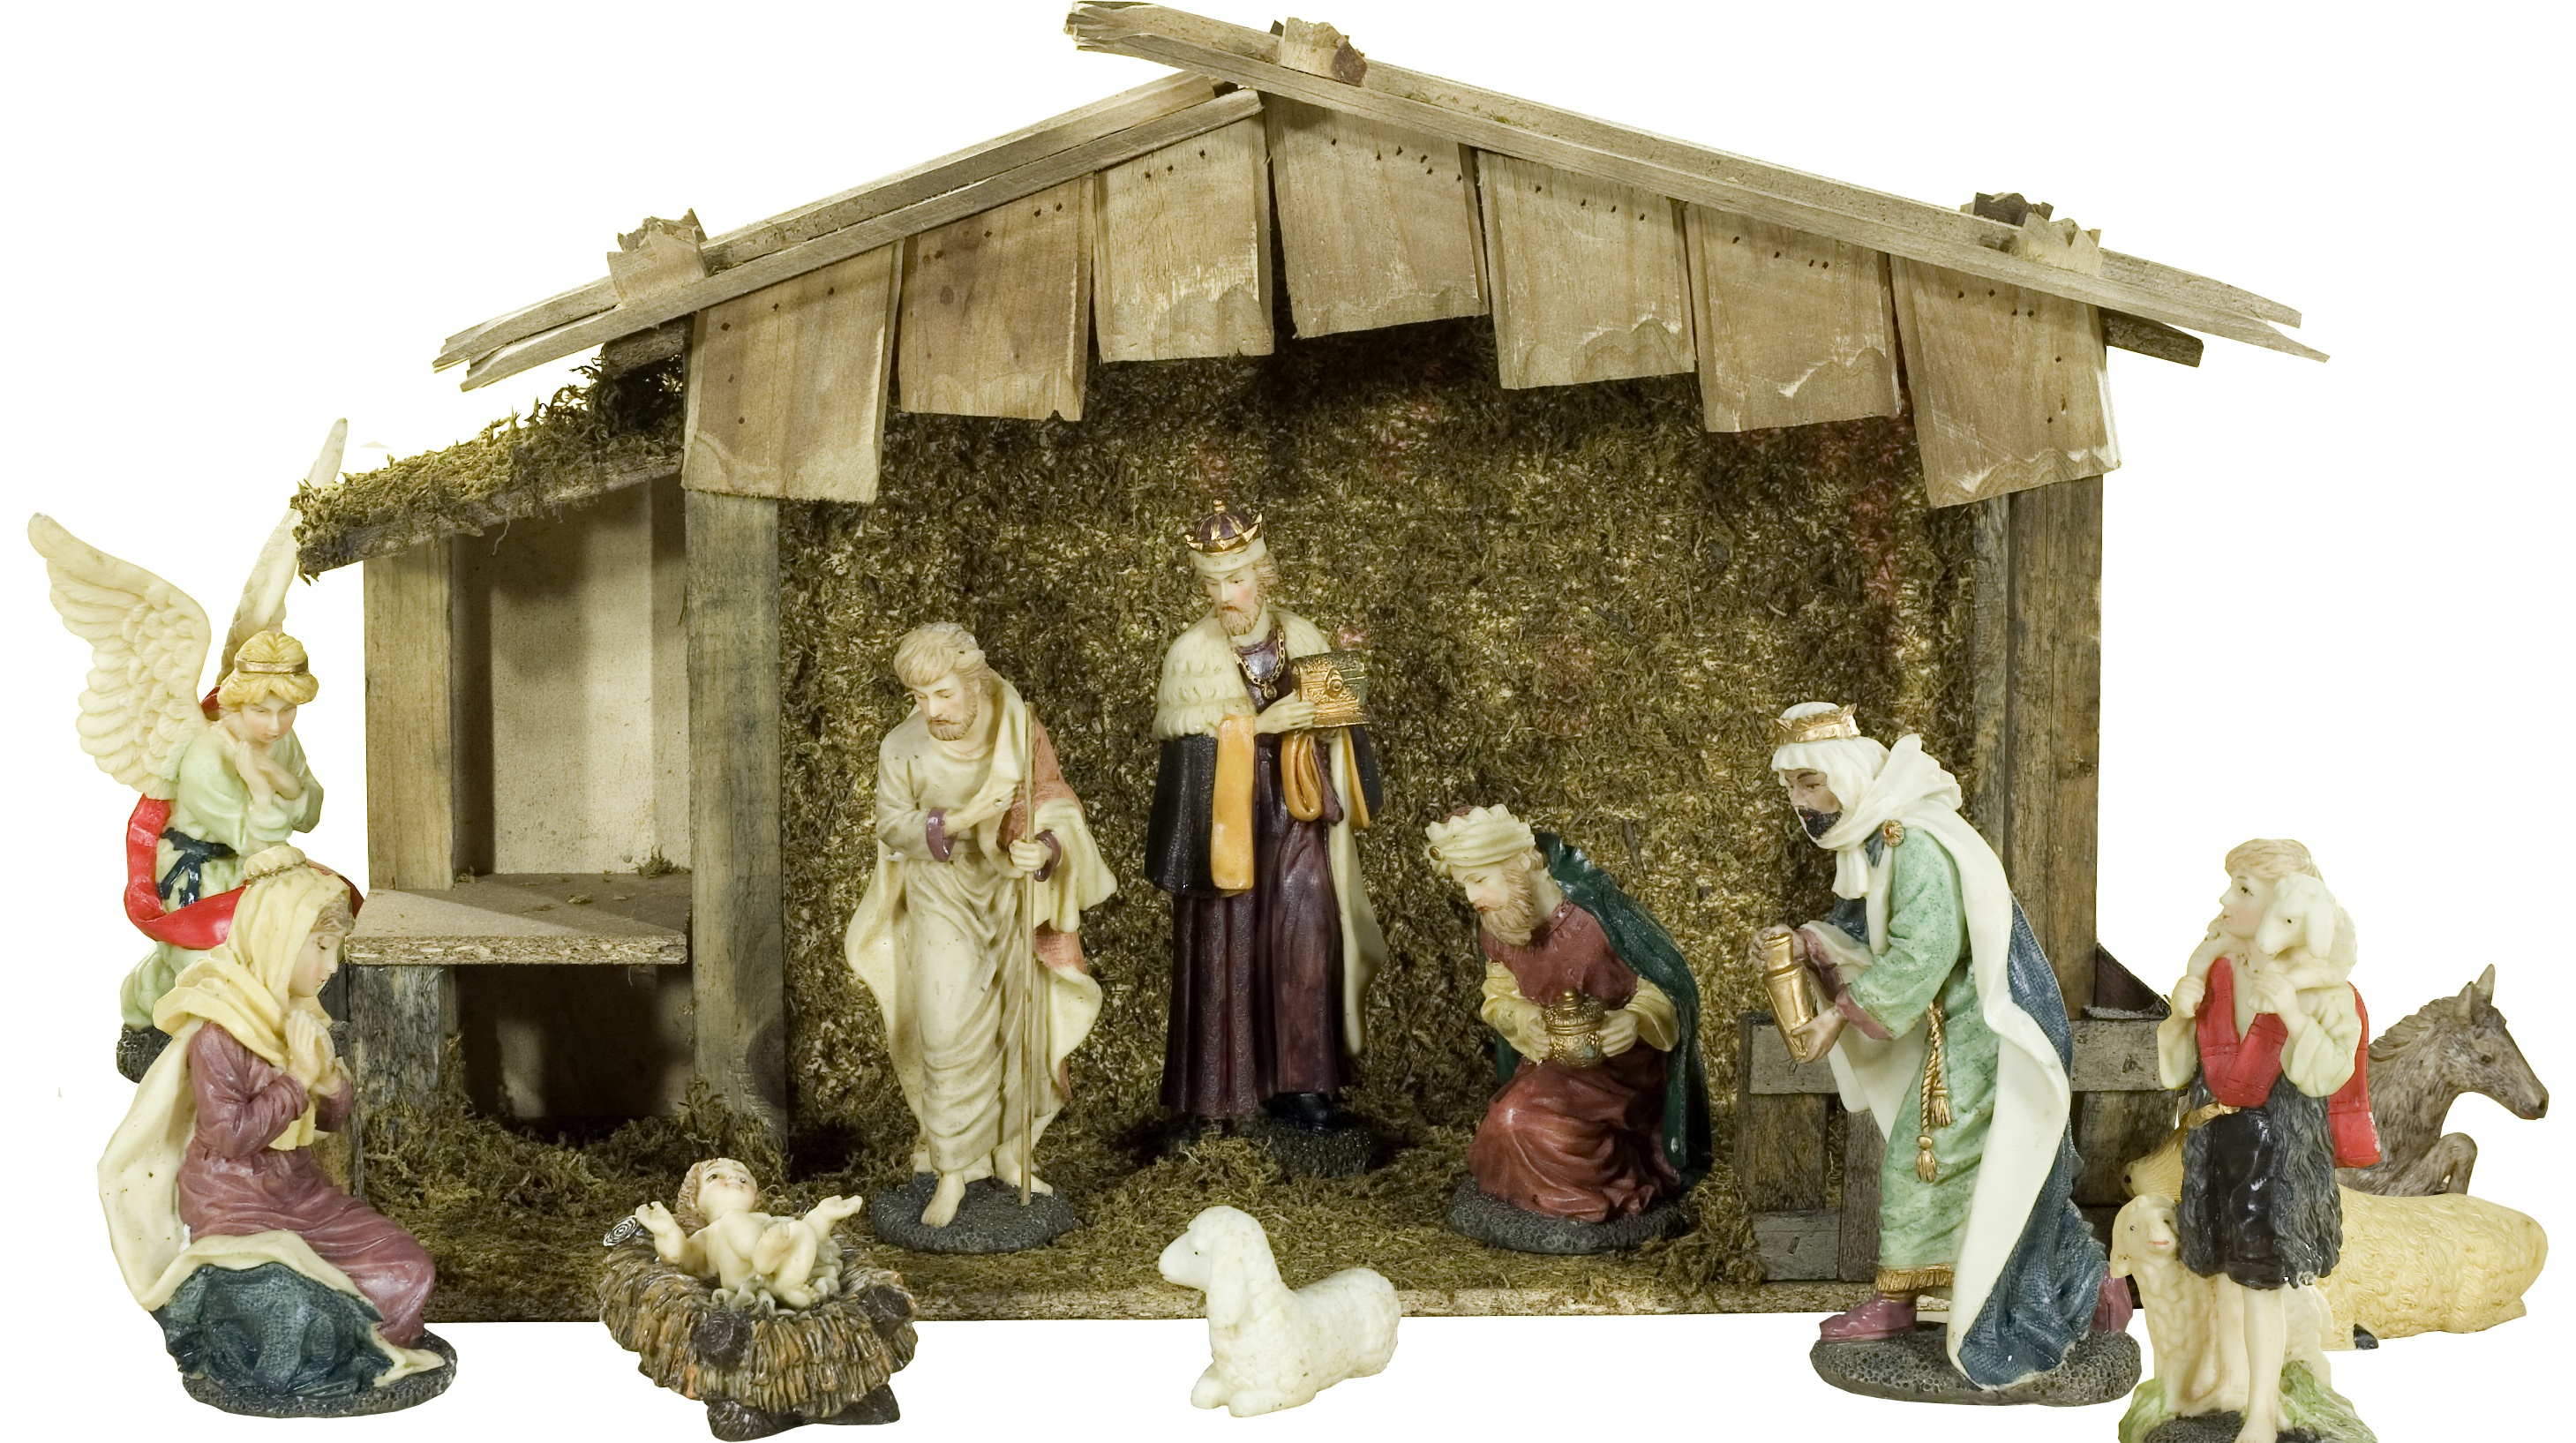 Outdoor Lighted Nativity Sets picture on 11 Piece Polyresin Nativity Set with 13H Wood Stable 21890 with Outdoor Lighted Nativity Sets, Outdoor Lighting ideas e09a0a2083ca253edb80920fc0cc43b9